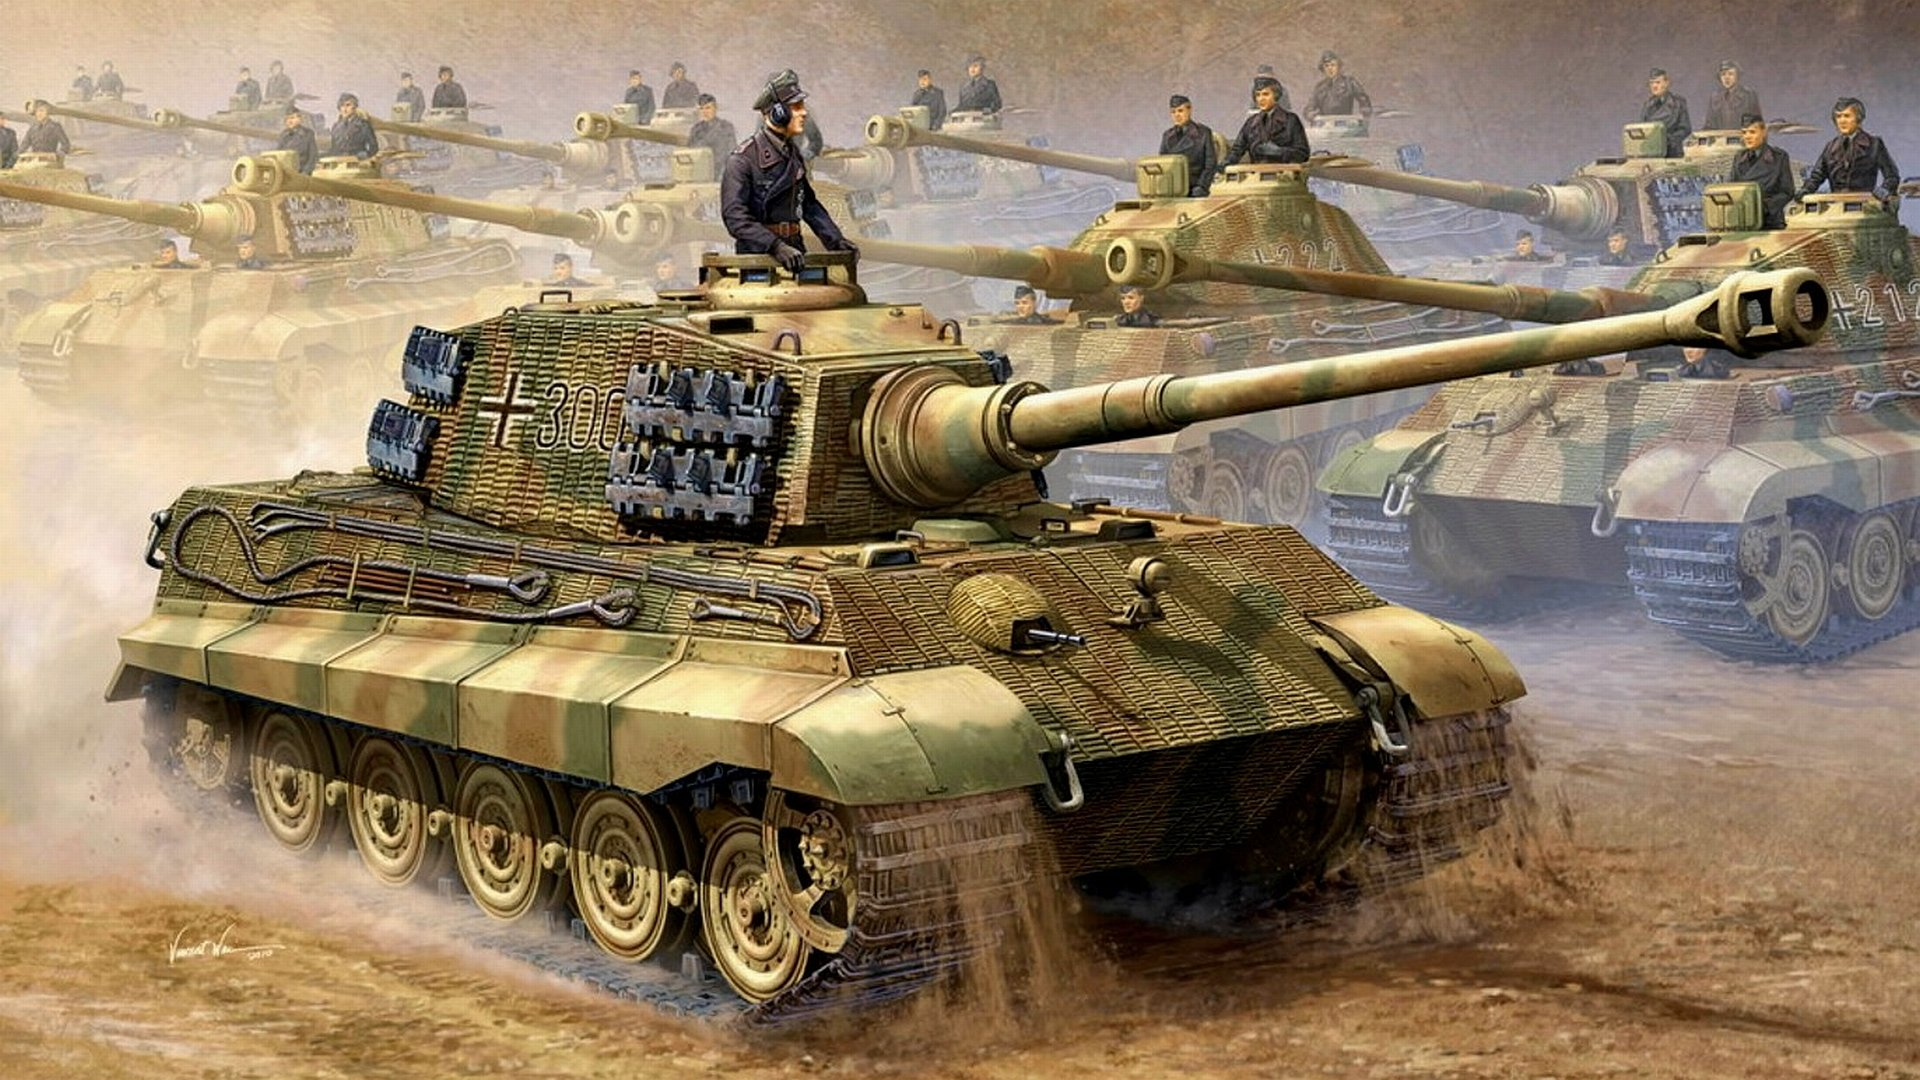 48 King Tiger Tank Wallpaper On Wallpapersafari